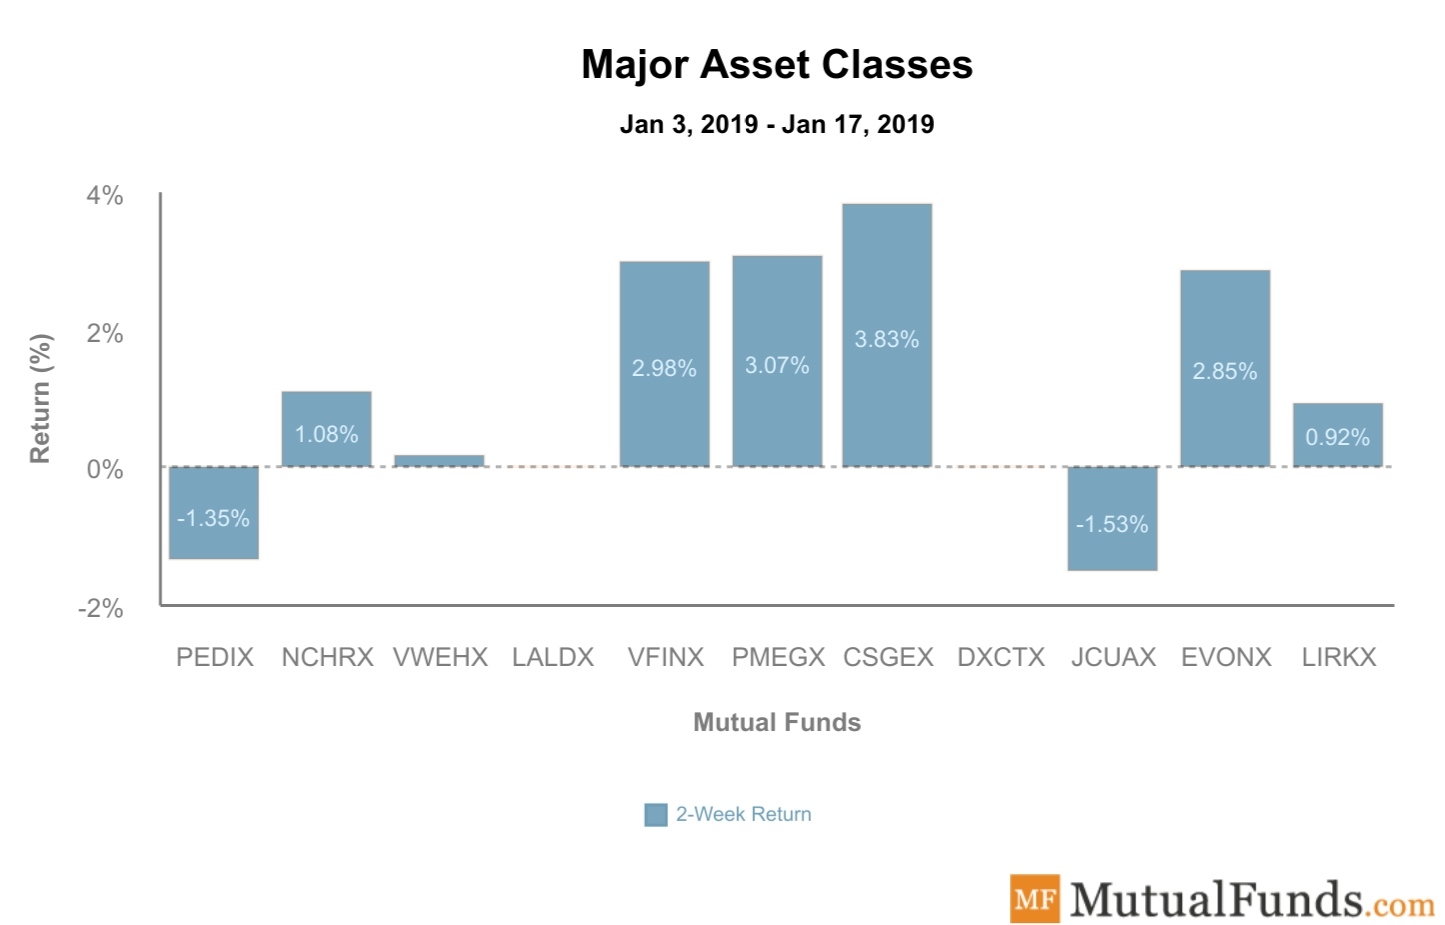 Major Asset Classes Performance Jan 21, 2020